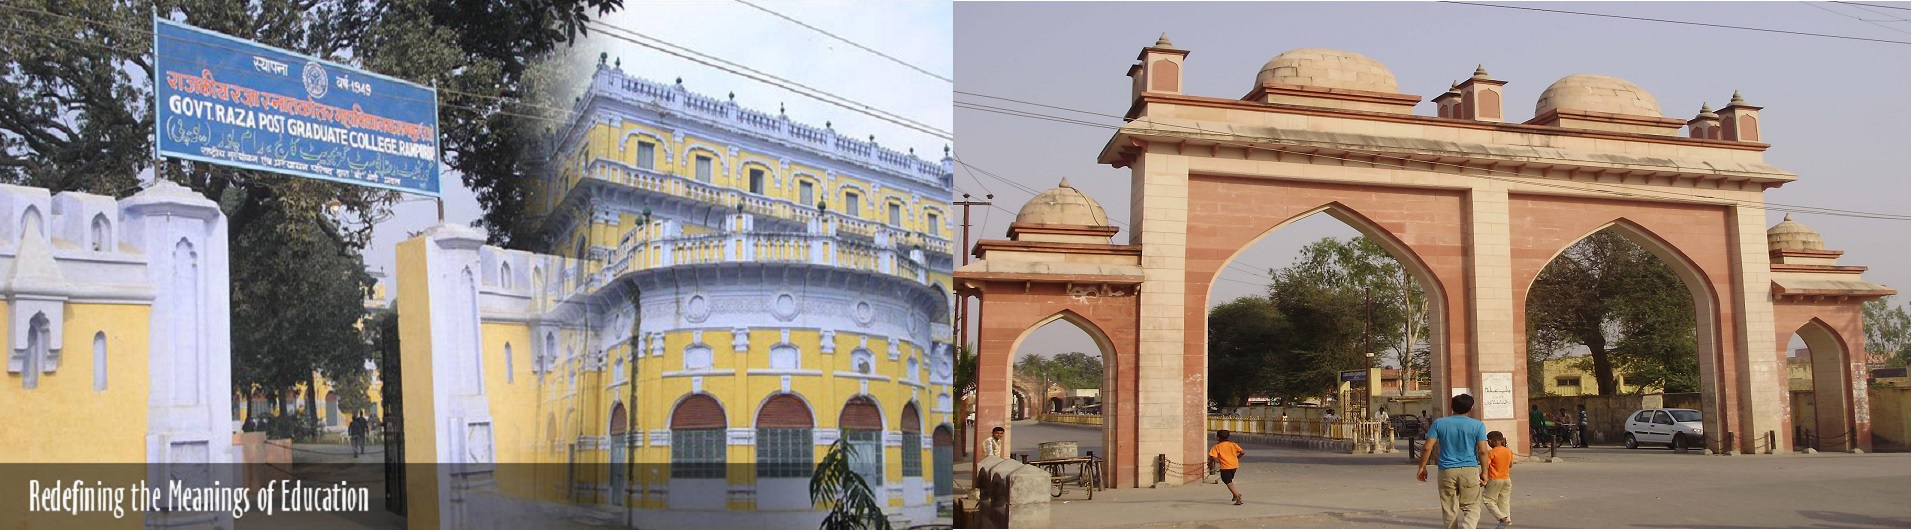 Degree College and Bab-e-Ilm Gate